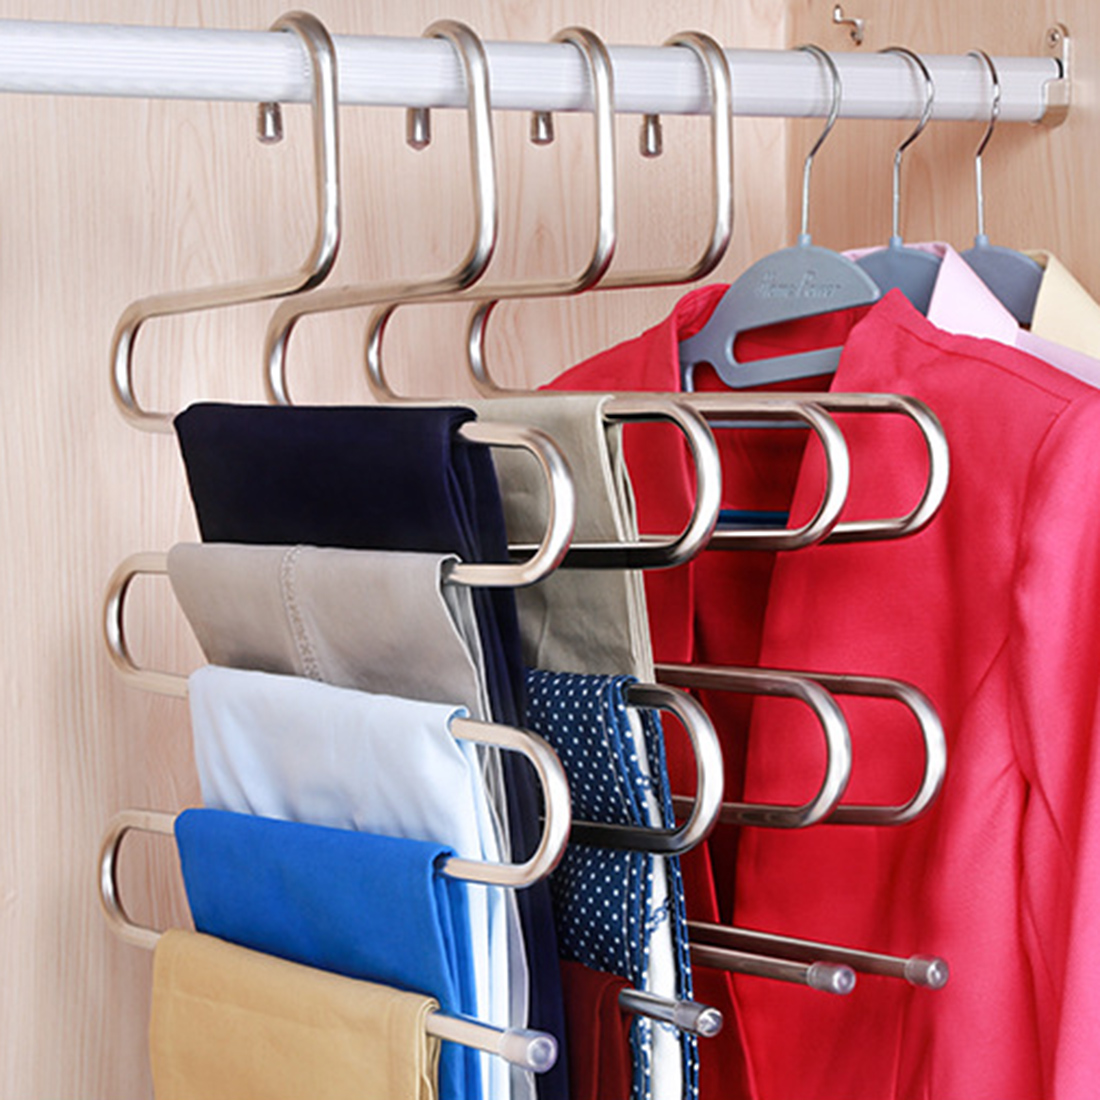 1pcs Multifunctional Multi-layers Rack S-Shape Stainless Steel Hangers For Clothes Scarf /Ties/Belts Organizer - Silver